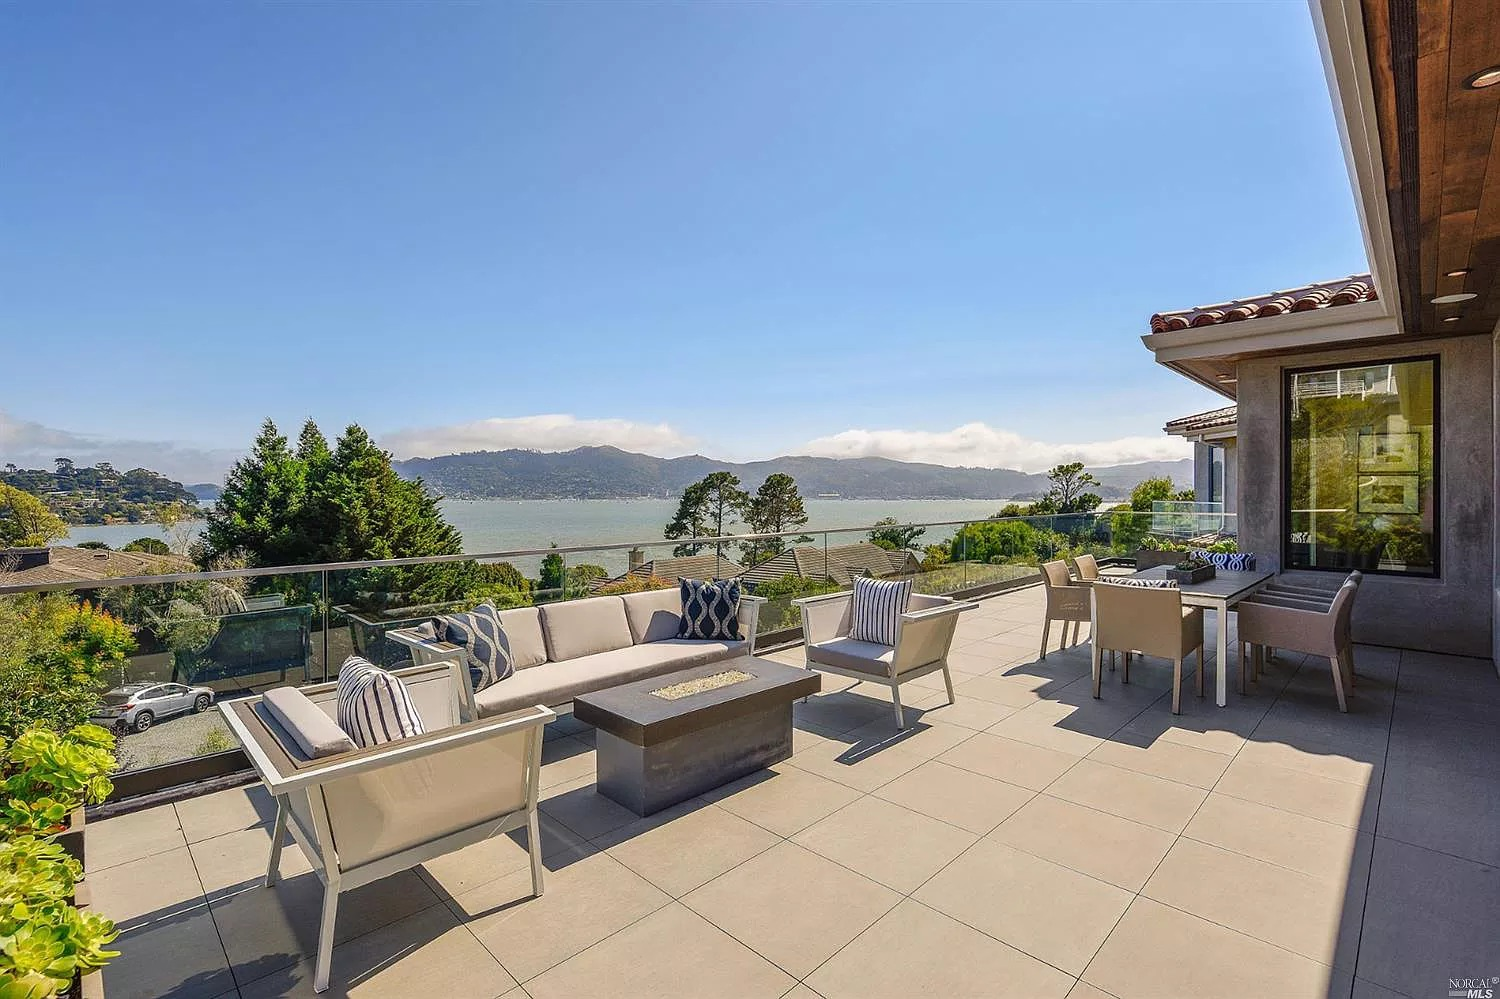 25 Gilmartin Dr, Belvedere Tiburon, CA 94920 - $8,995,000 home for sale, house images, photos and pics gallery